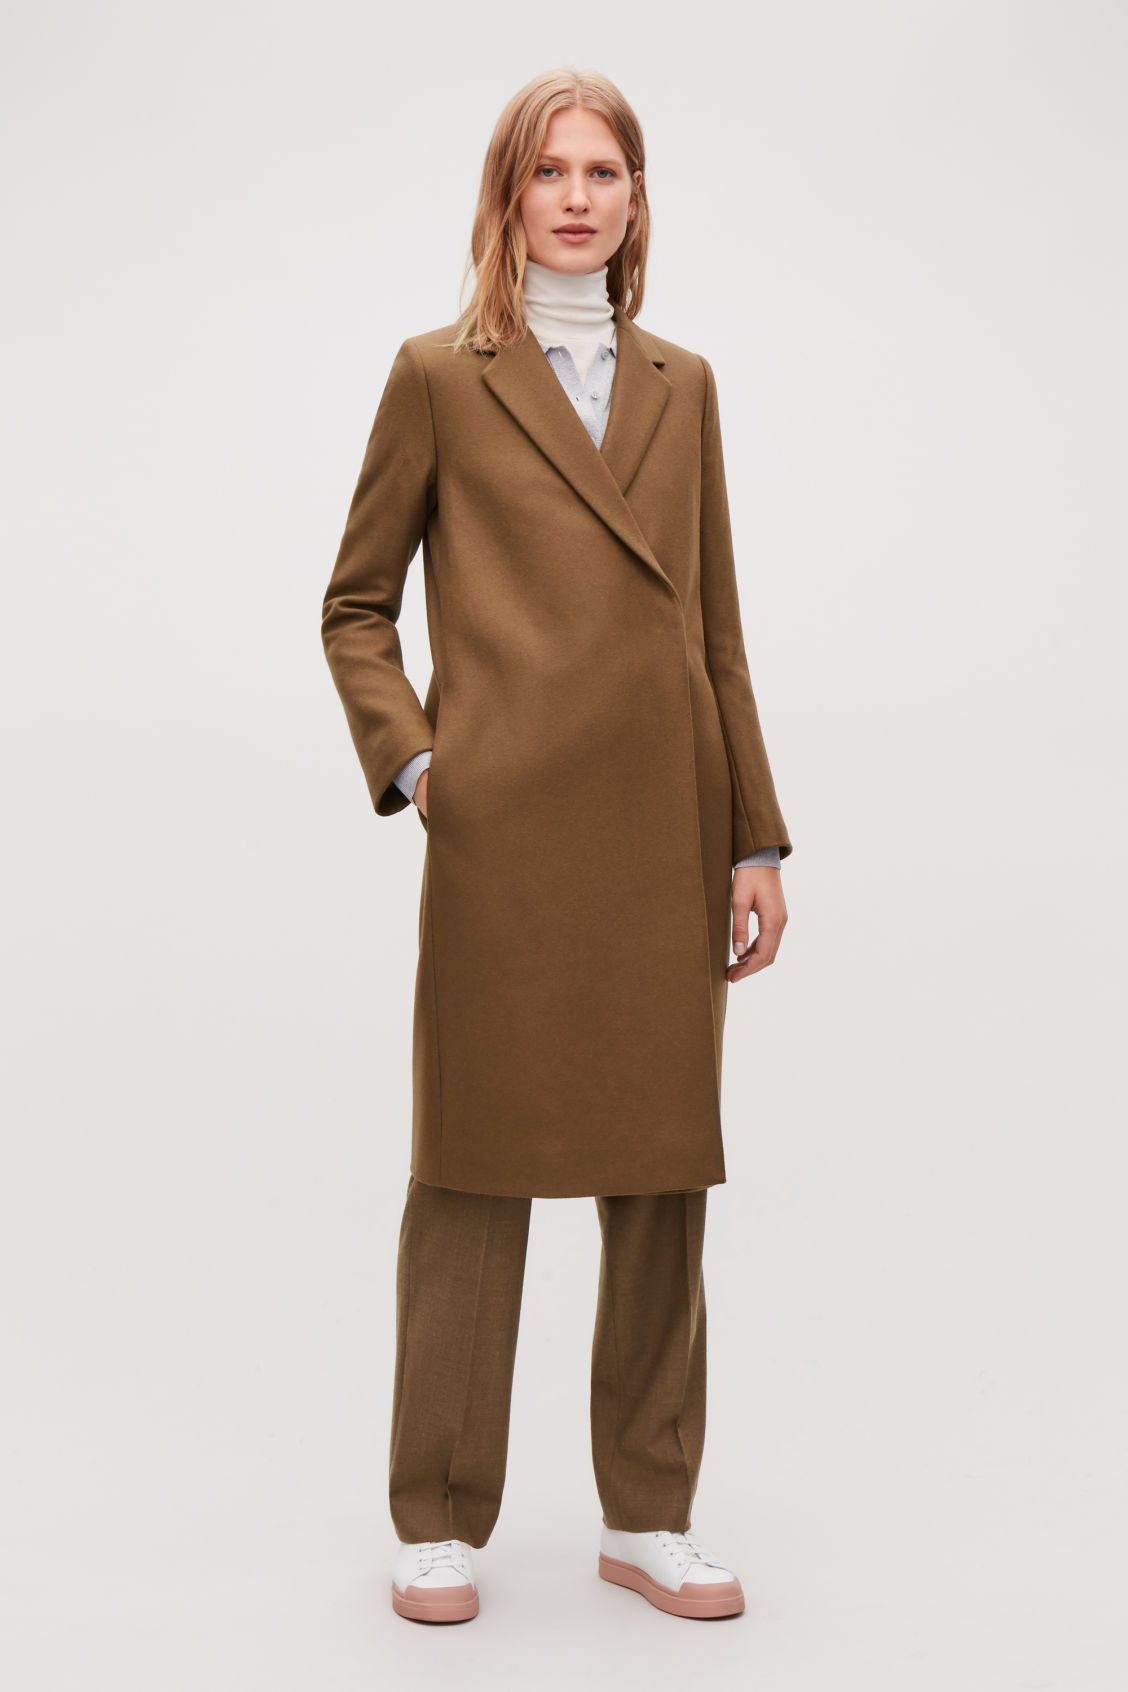 Double-Breasted Wool Coat in Beige from COS